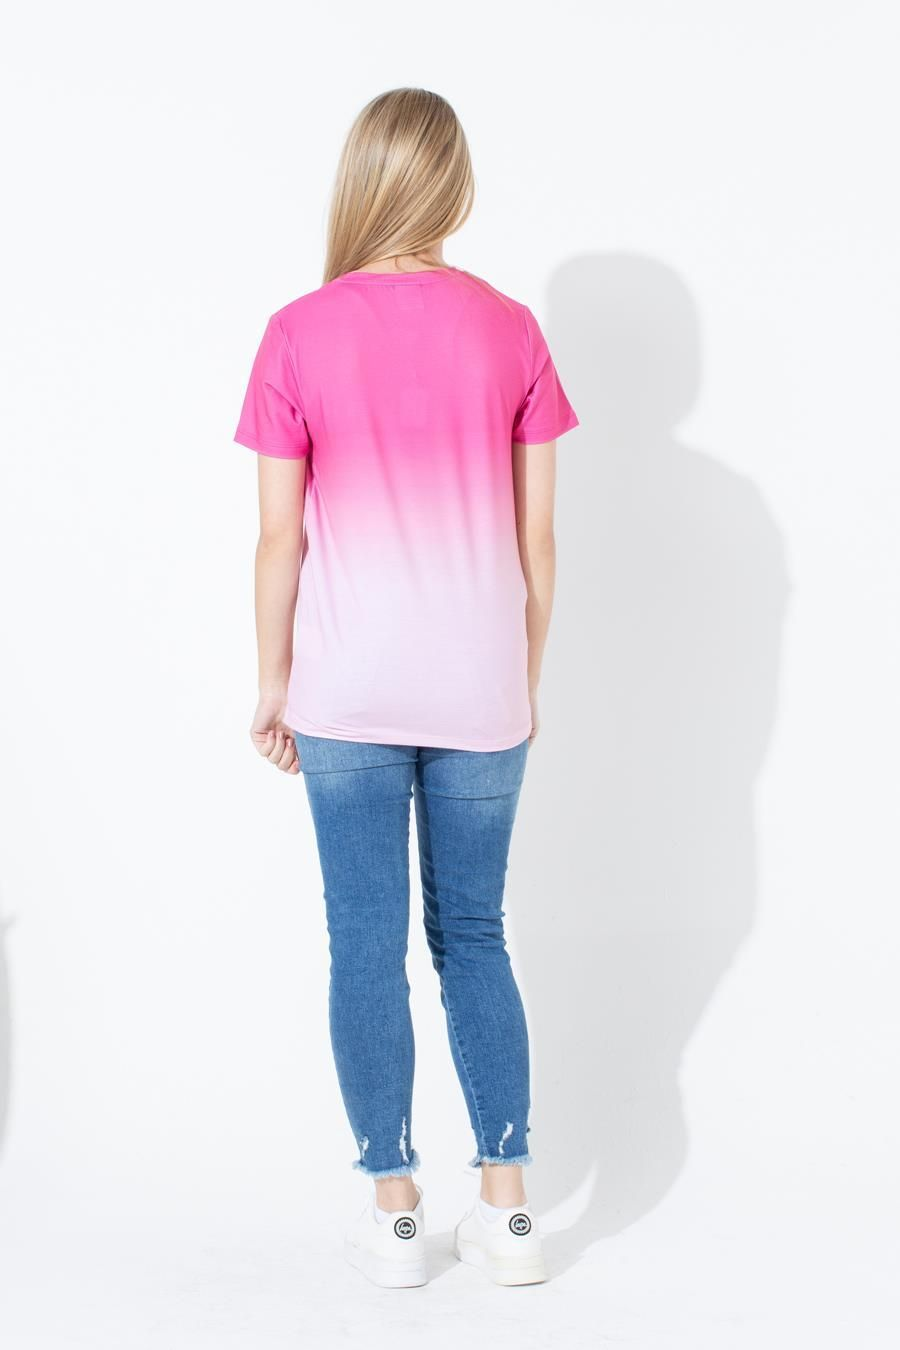 Hype Berry Fade Kids T-Shirt 16Y